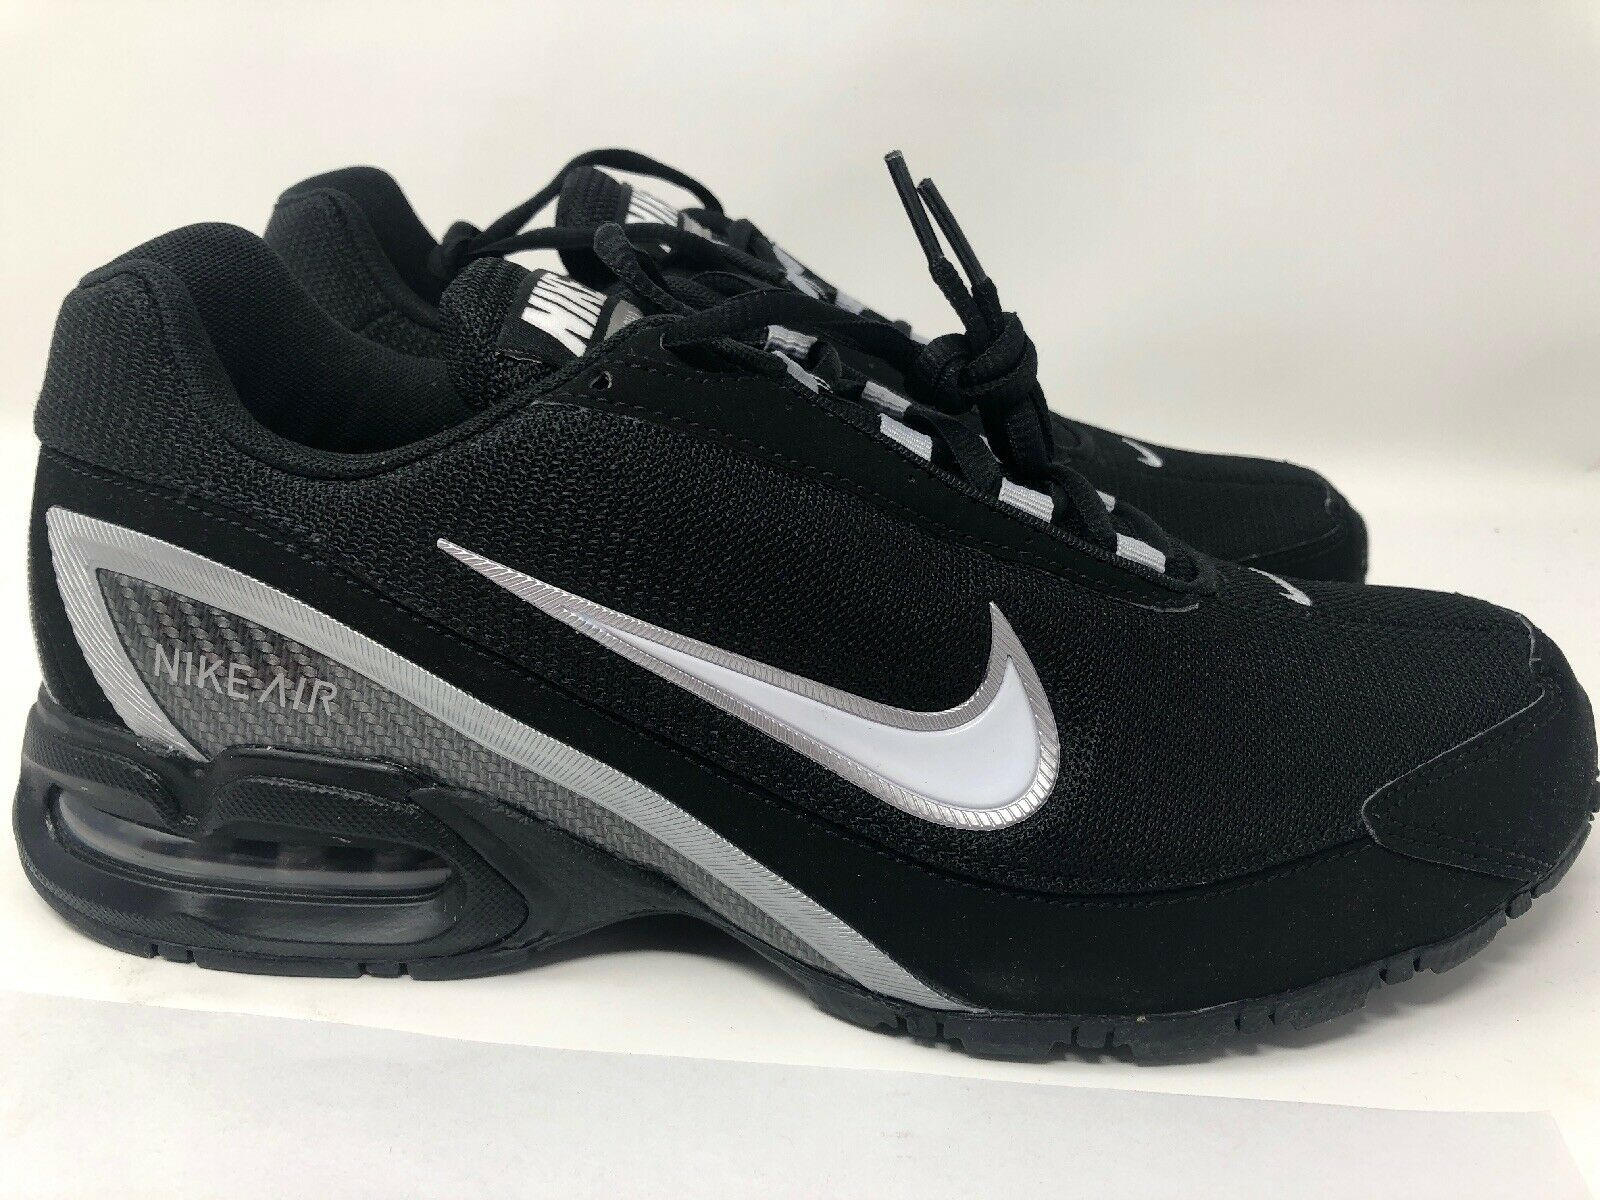 separation shoes 449fd c6cfb Nike Air Max Max Max Torch 3 Black White 319116-011 Running shoes Men s Size